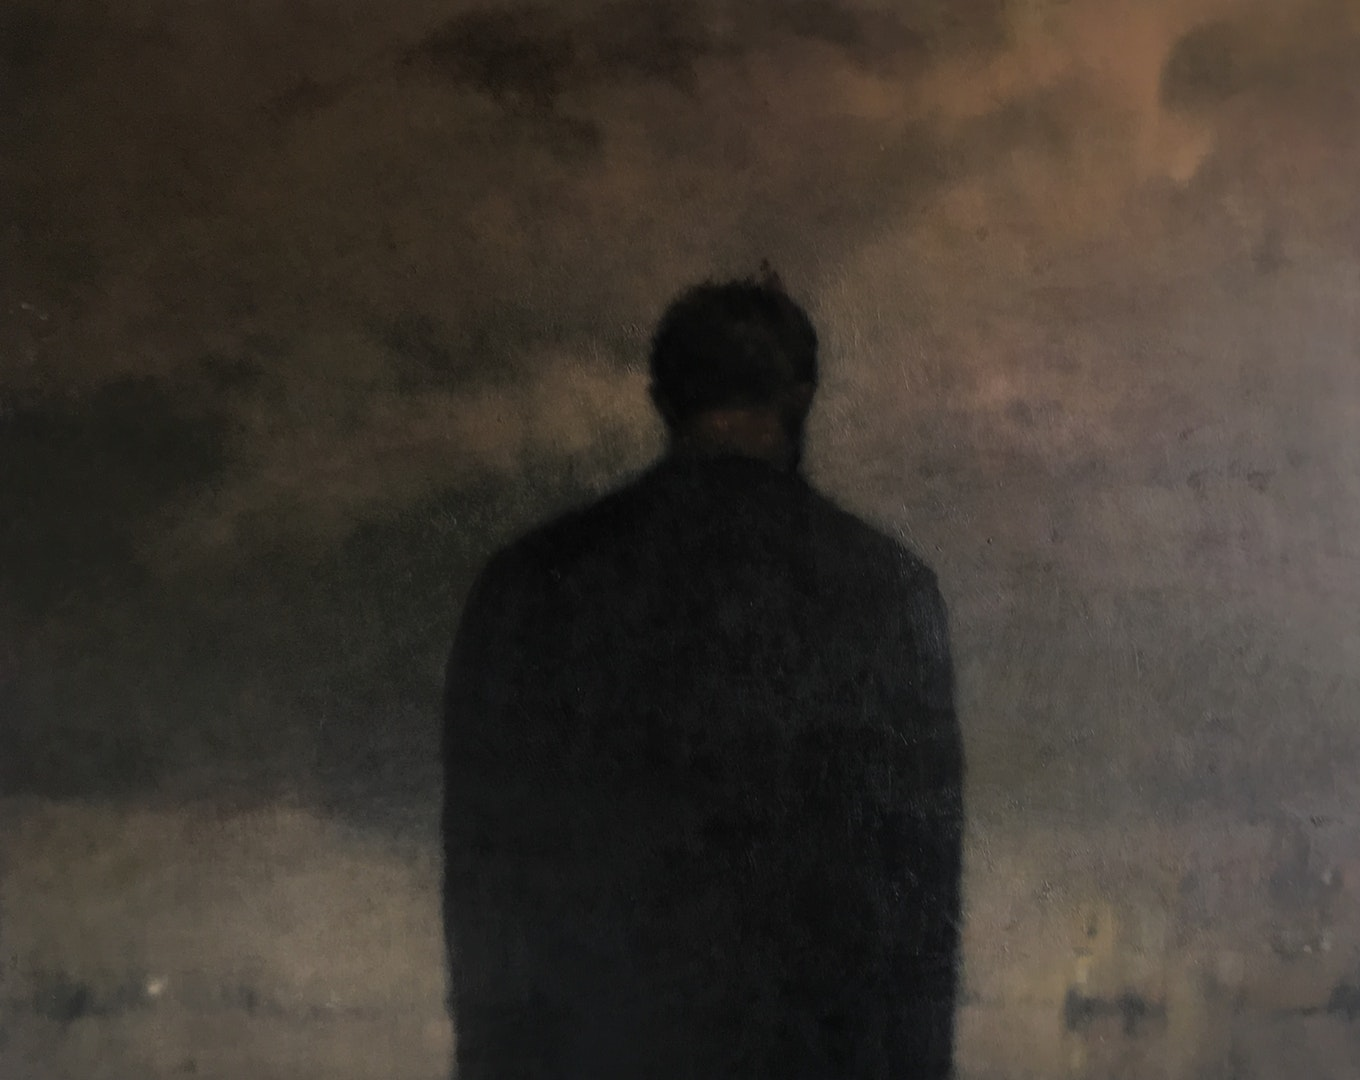 Anne Magill  Ache  Oil on canvas, 120 x 170 x 40 cm  http://www.annemagill.com